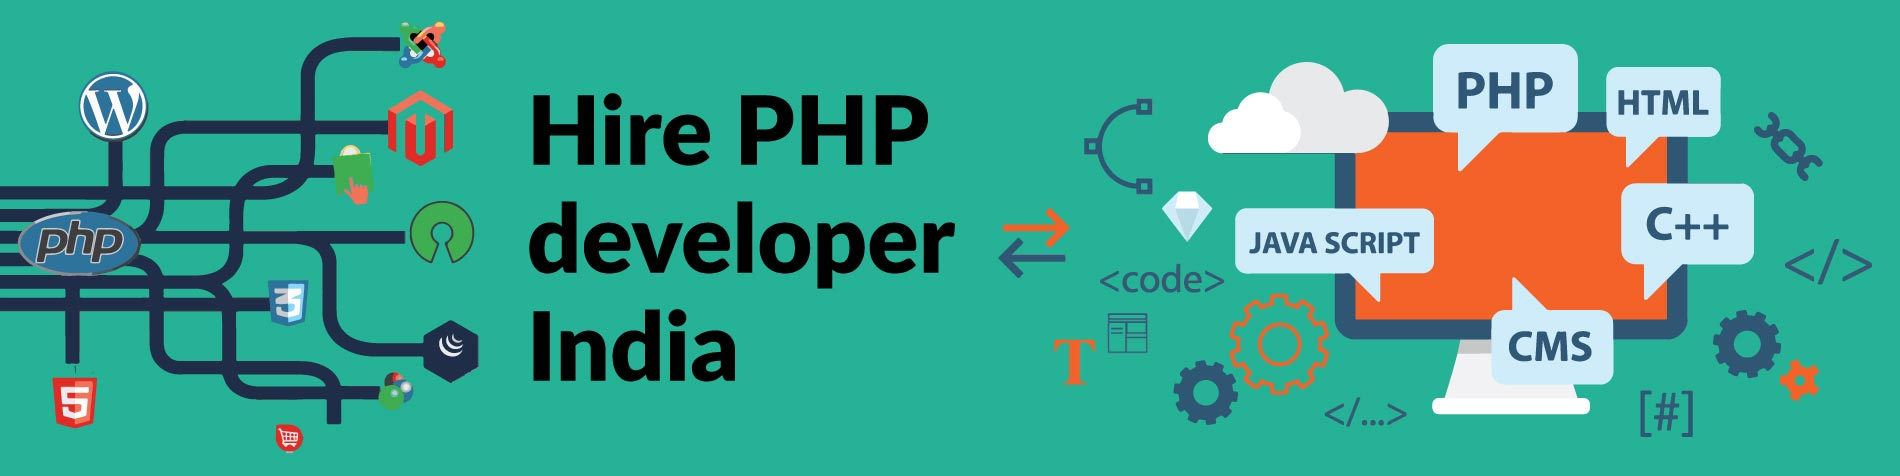 Best PHP Development Company Delhi